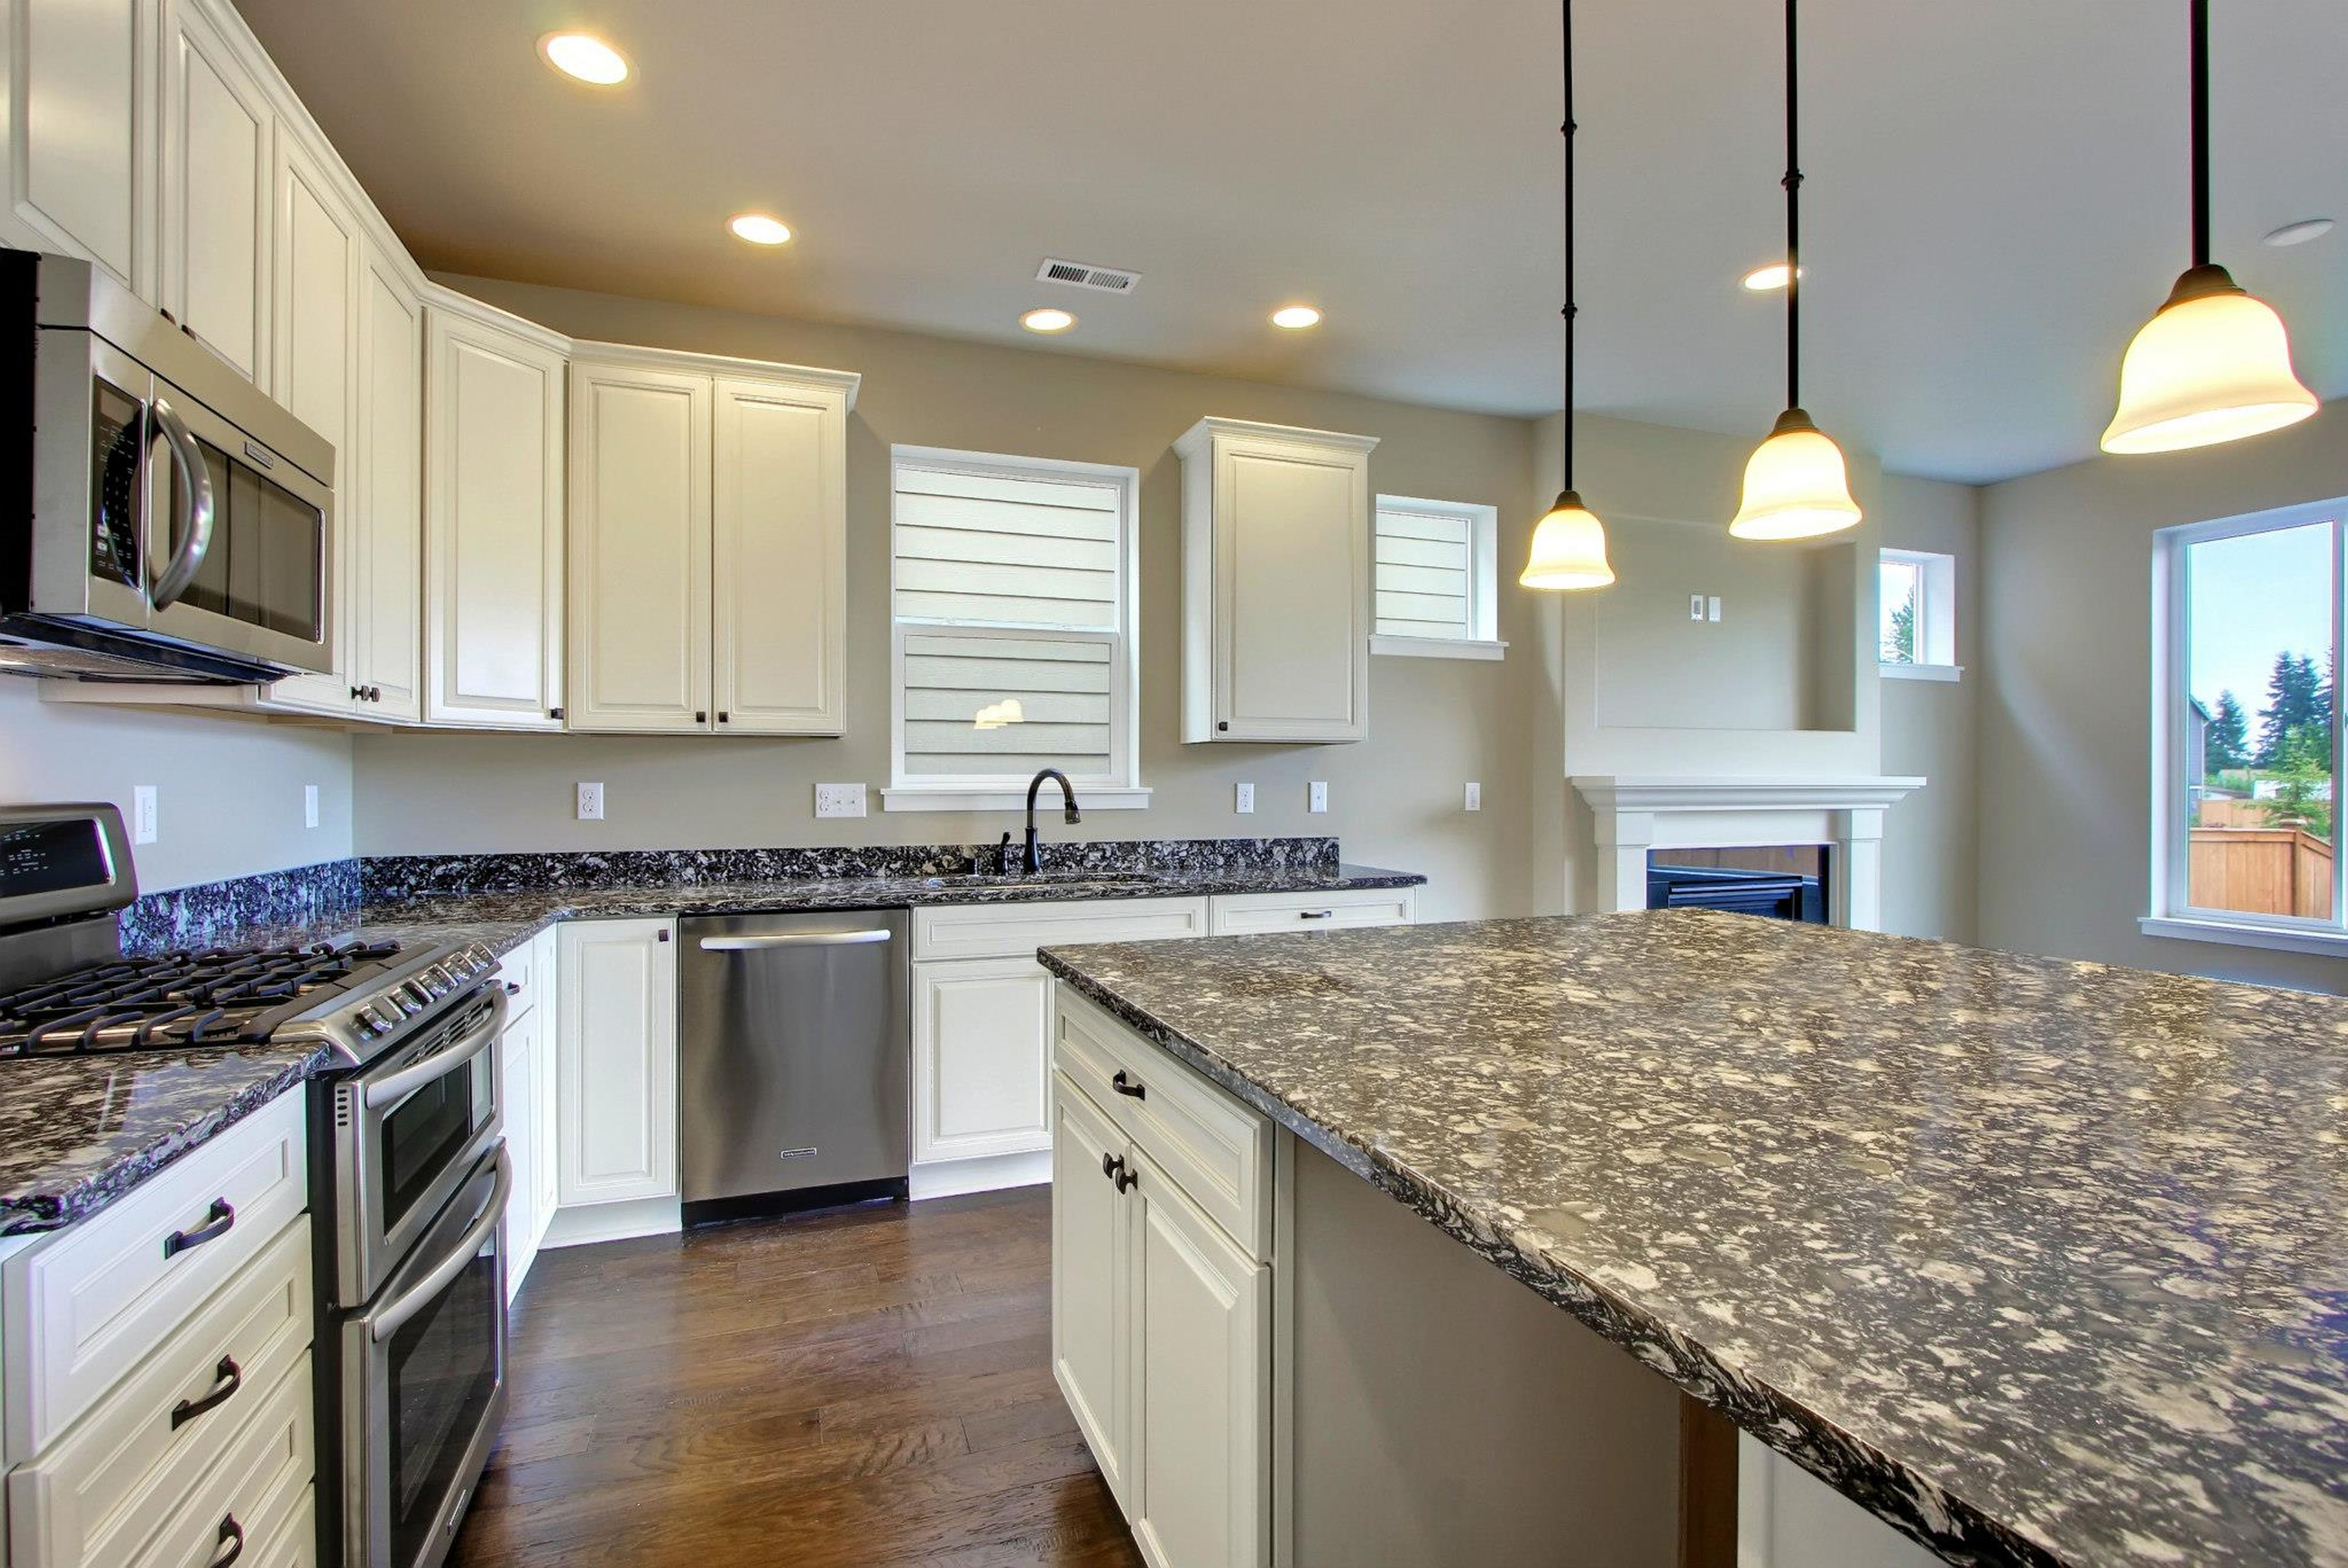 Permalink to Best Creamy White Color For Kitchen Cabinets